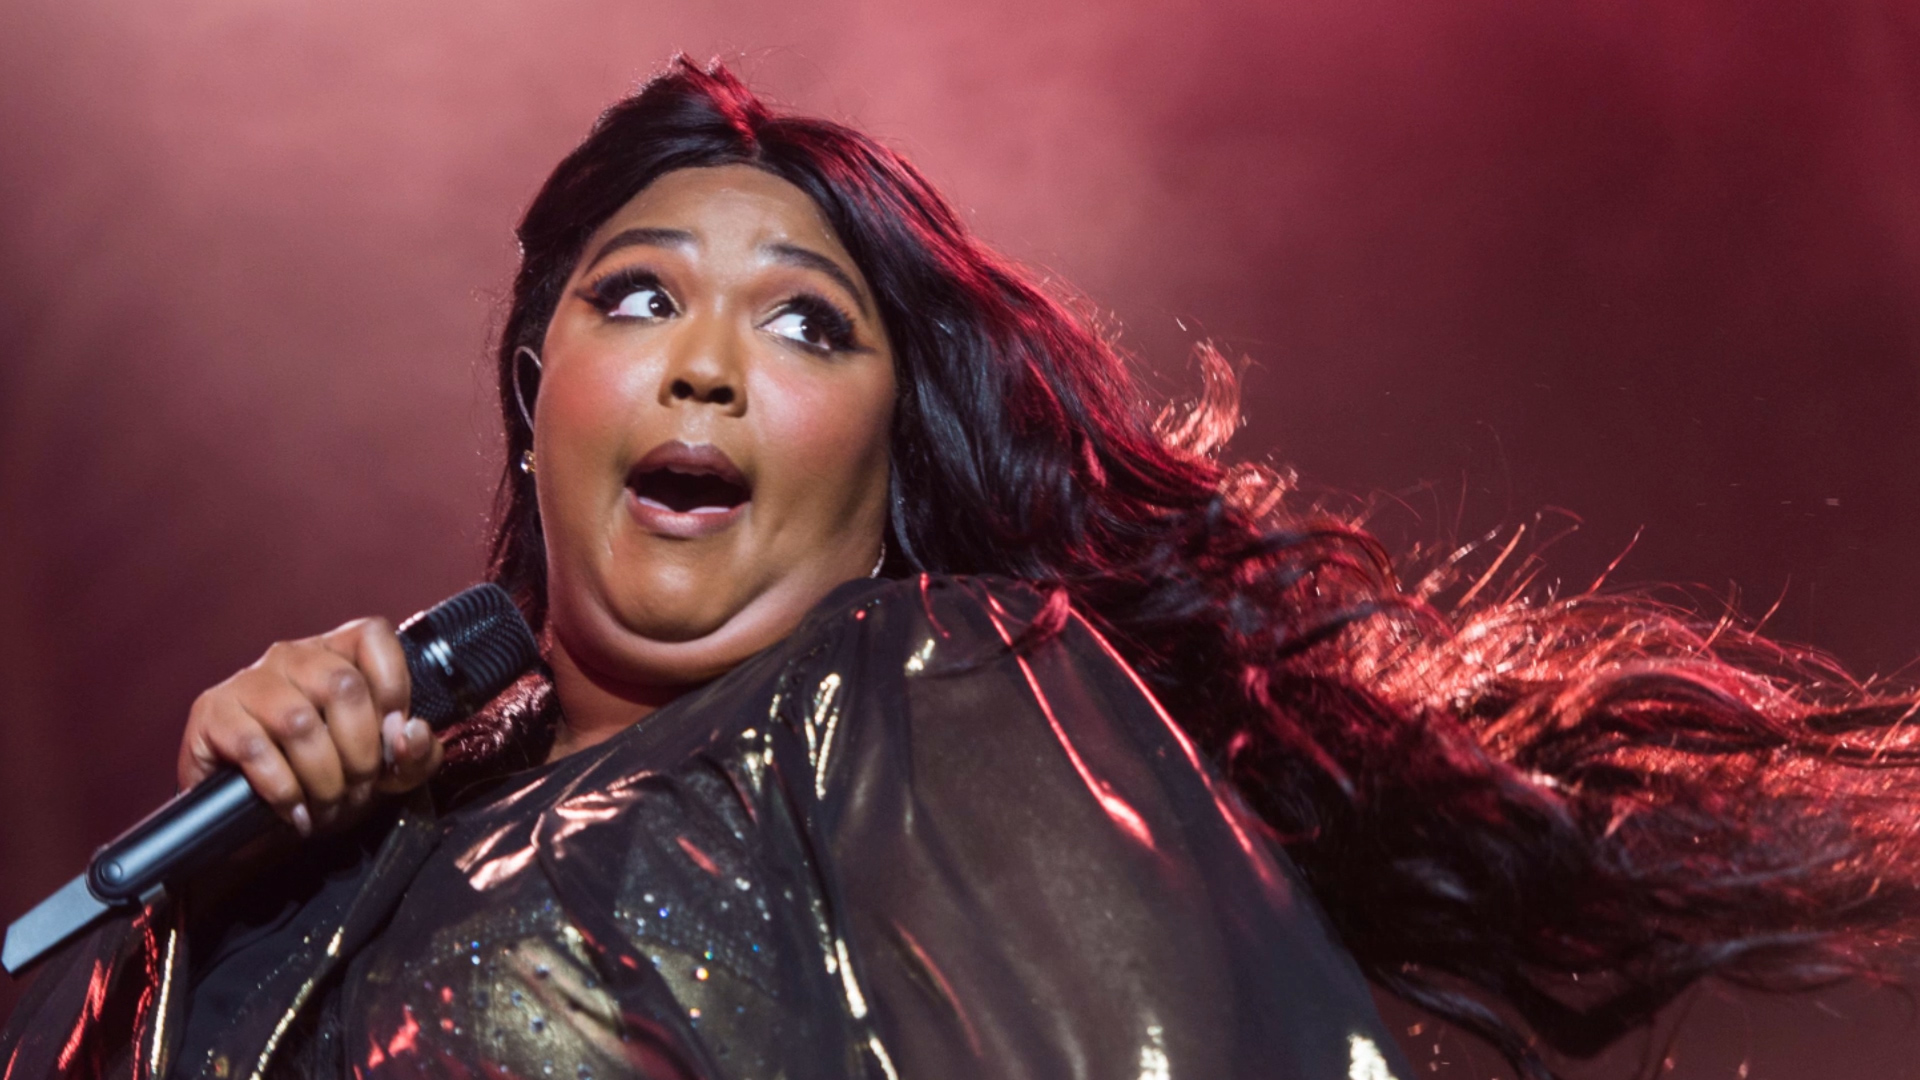 Lizzo Credits Woman Whose Tweet Inspired 'Truth Hurts' Lyric After Plagiarism Allegations